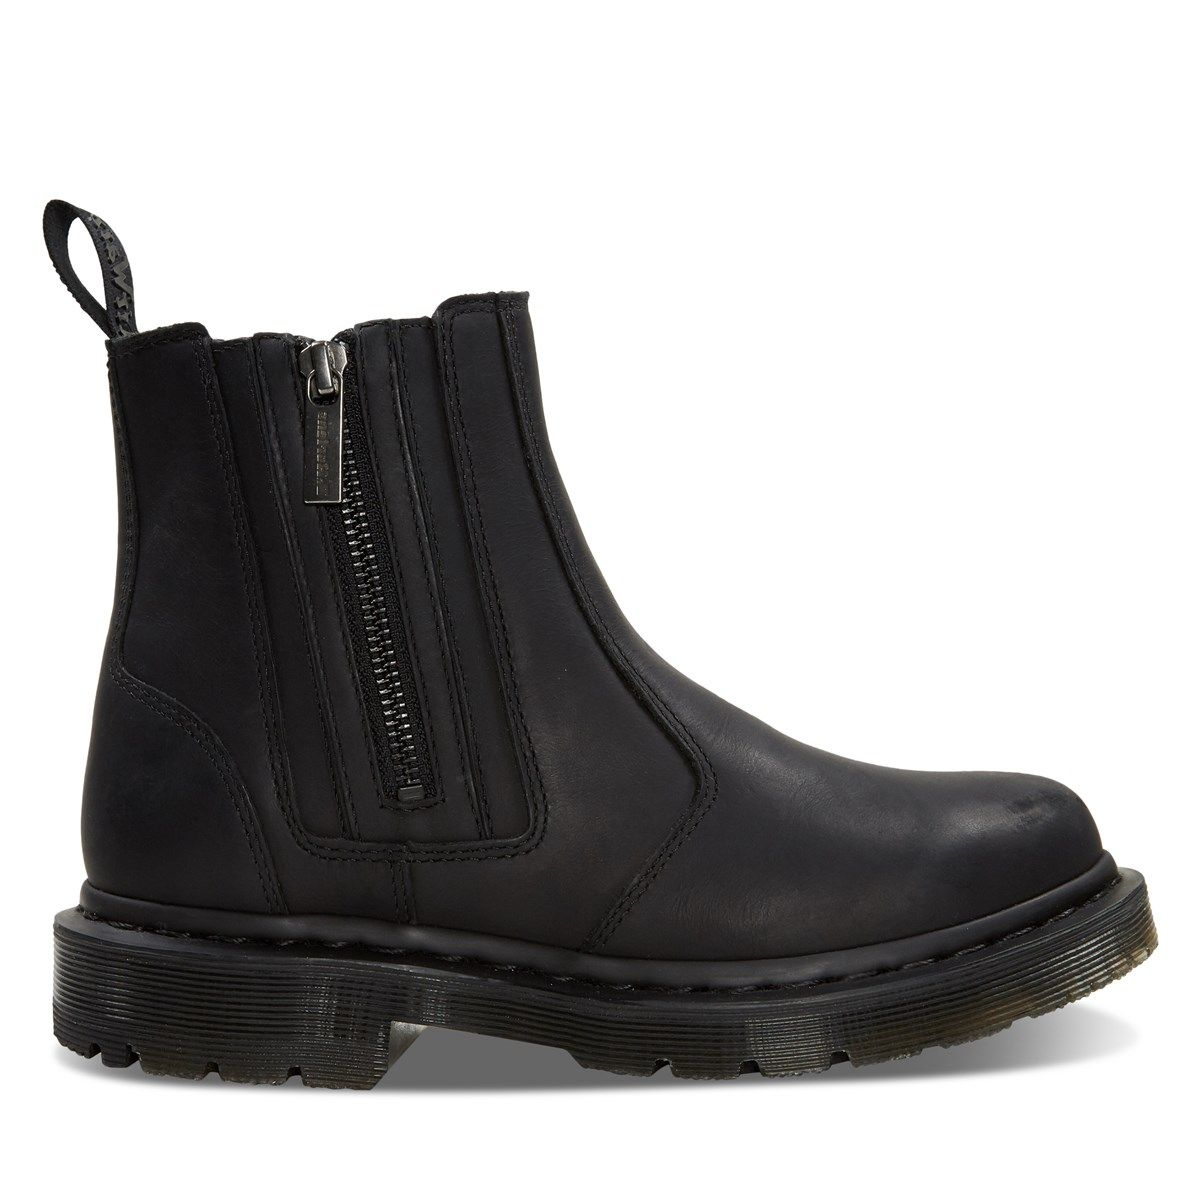 Women's 2976 Alyson Boots in Black in 2019 | Zapatos | Boots